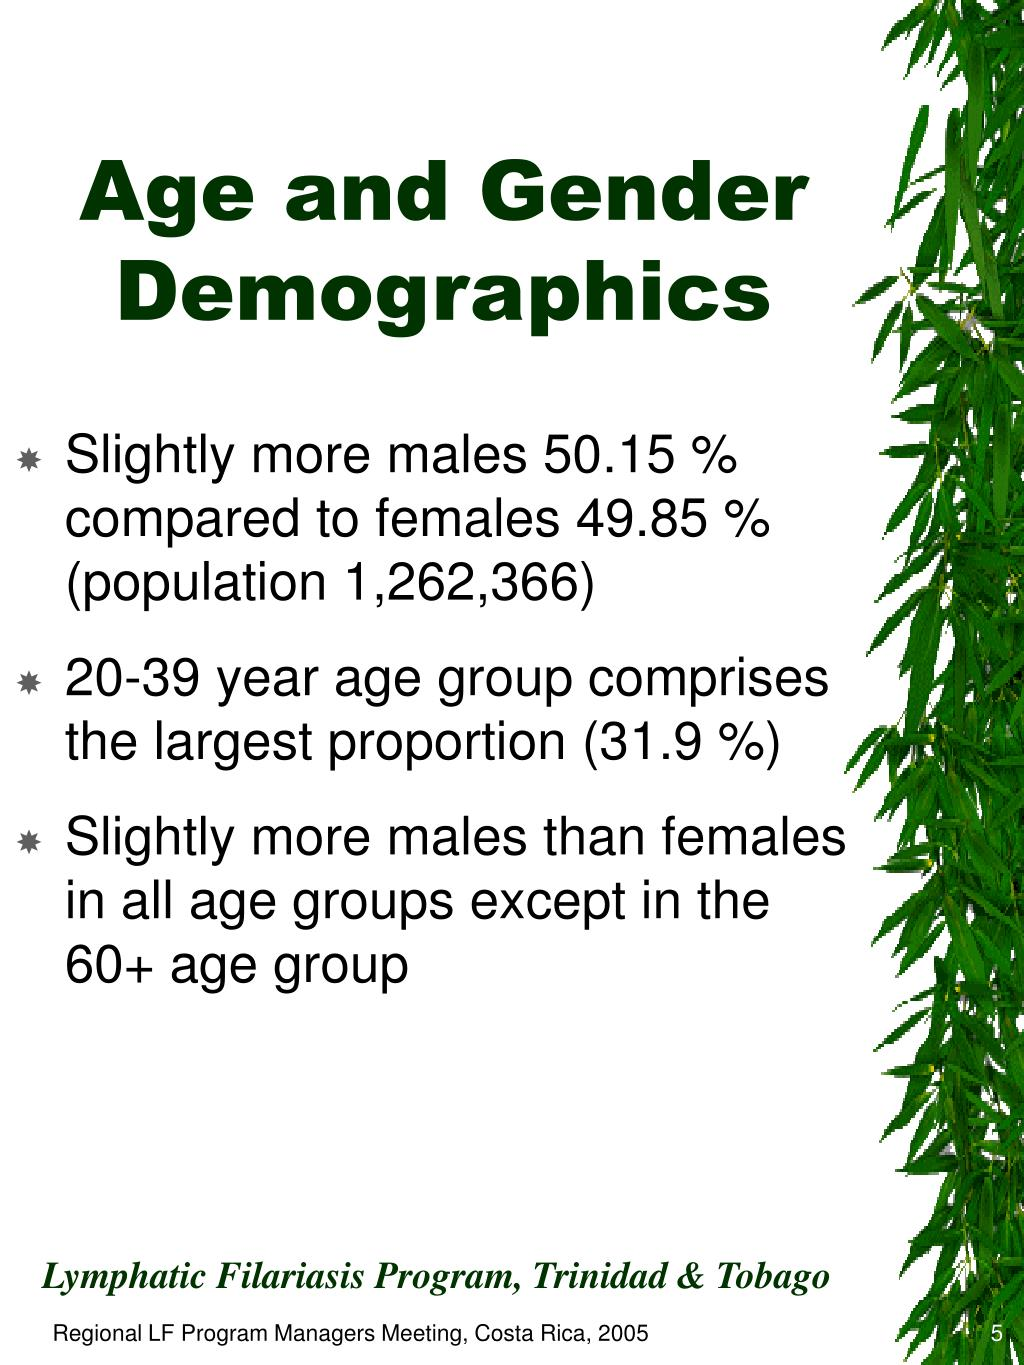 Age and Gender Demographics